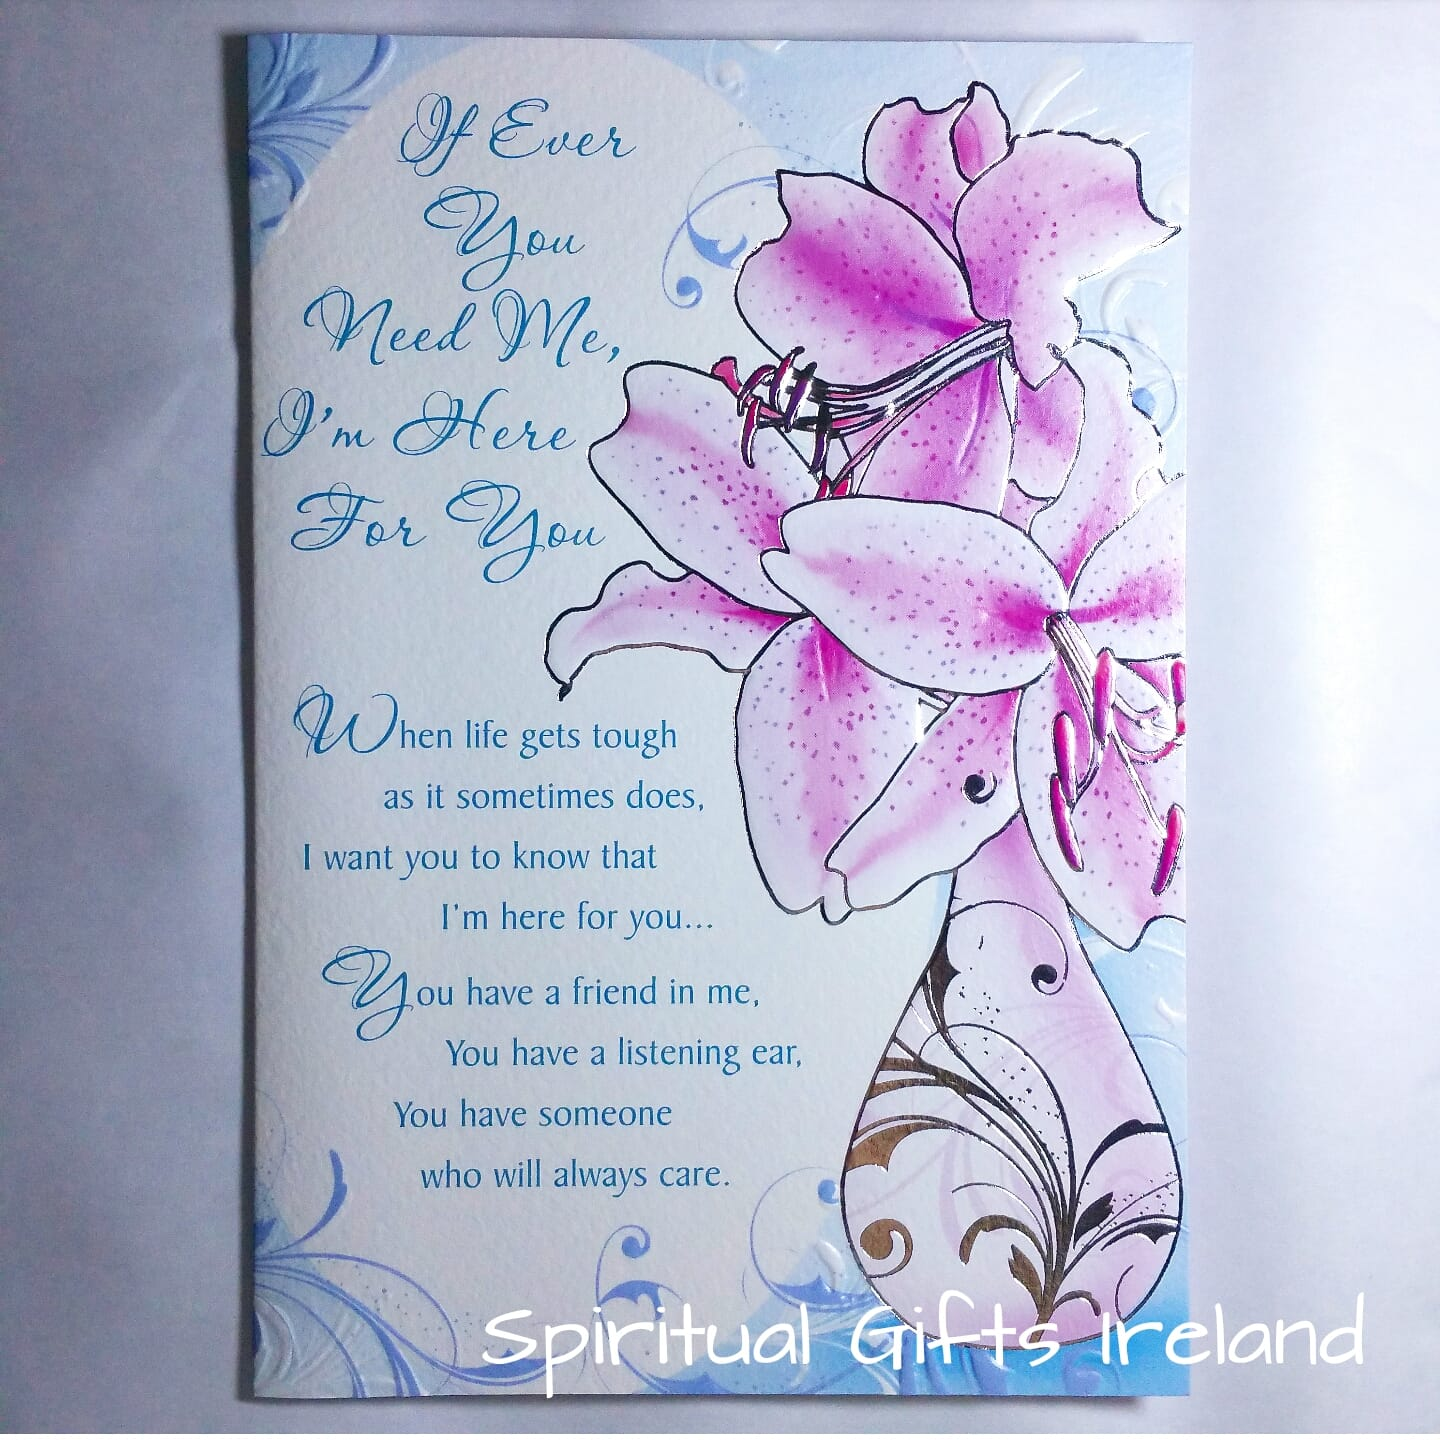 If you need me inspirational greeting card spiritual gifts ireland if you need me inspirational greeting card m4hsunfo